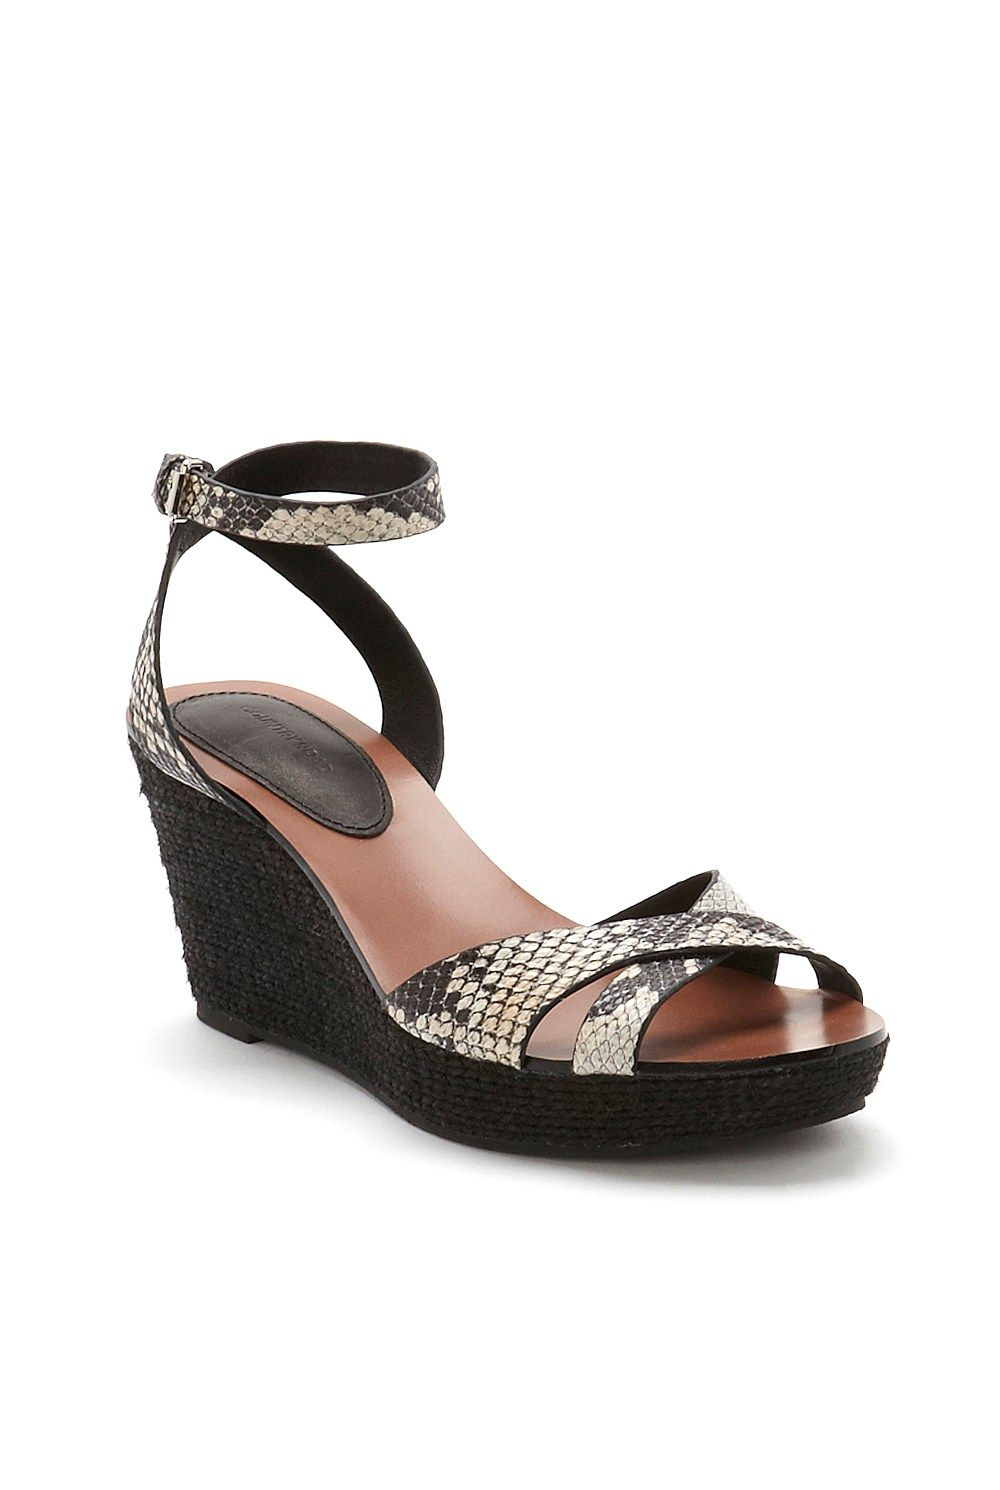 6540553676d Country Road - Country Road - Women s Shoes   Footwear Online - Nikki Snake  Wedge